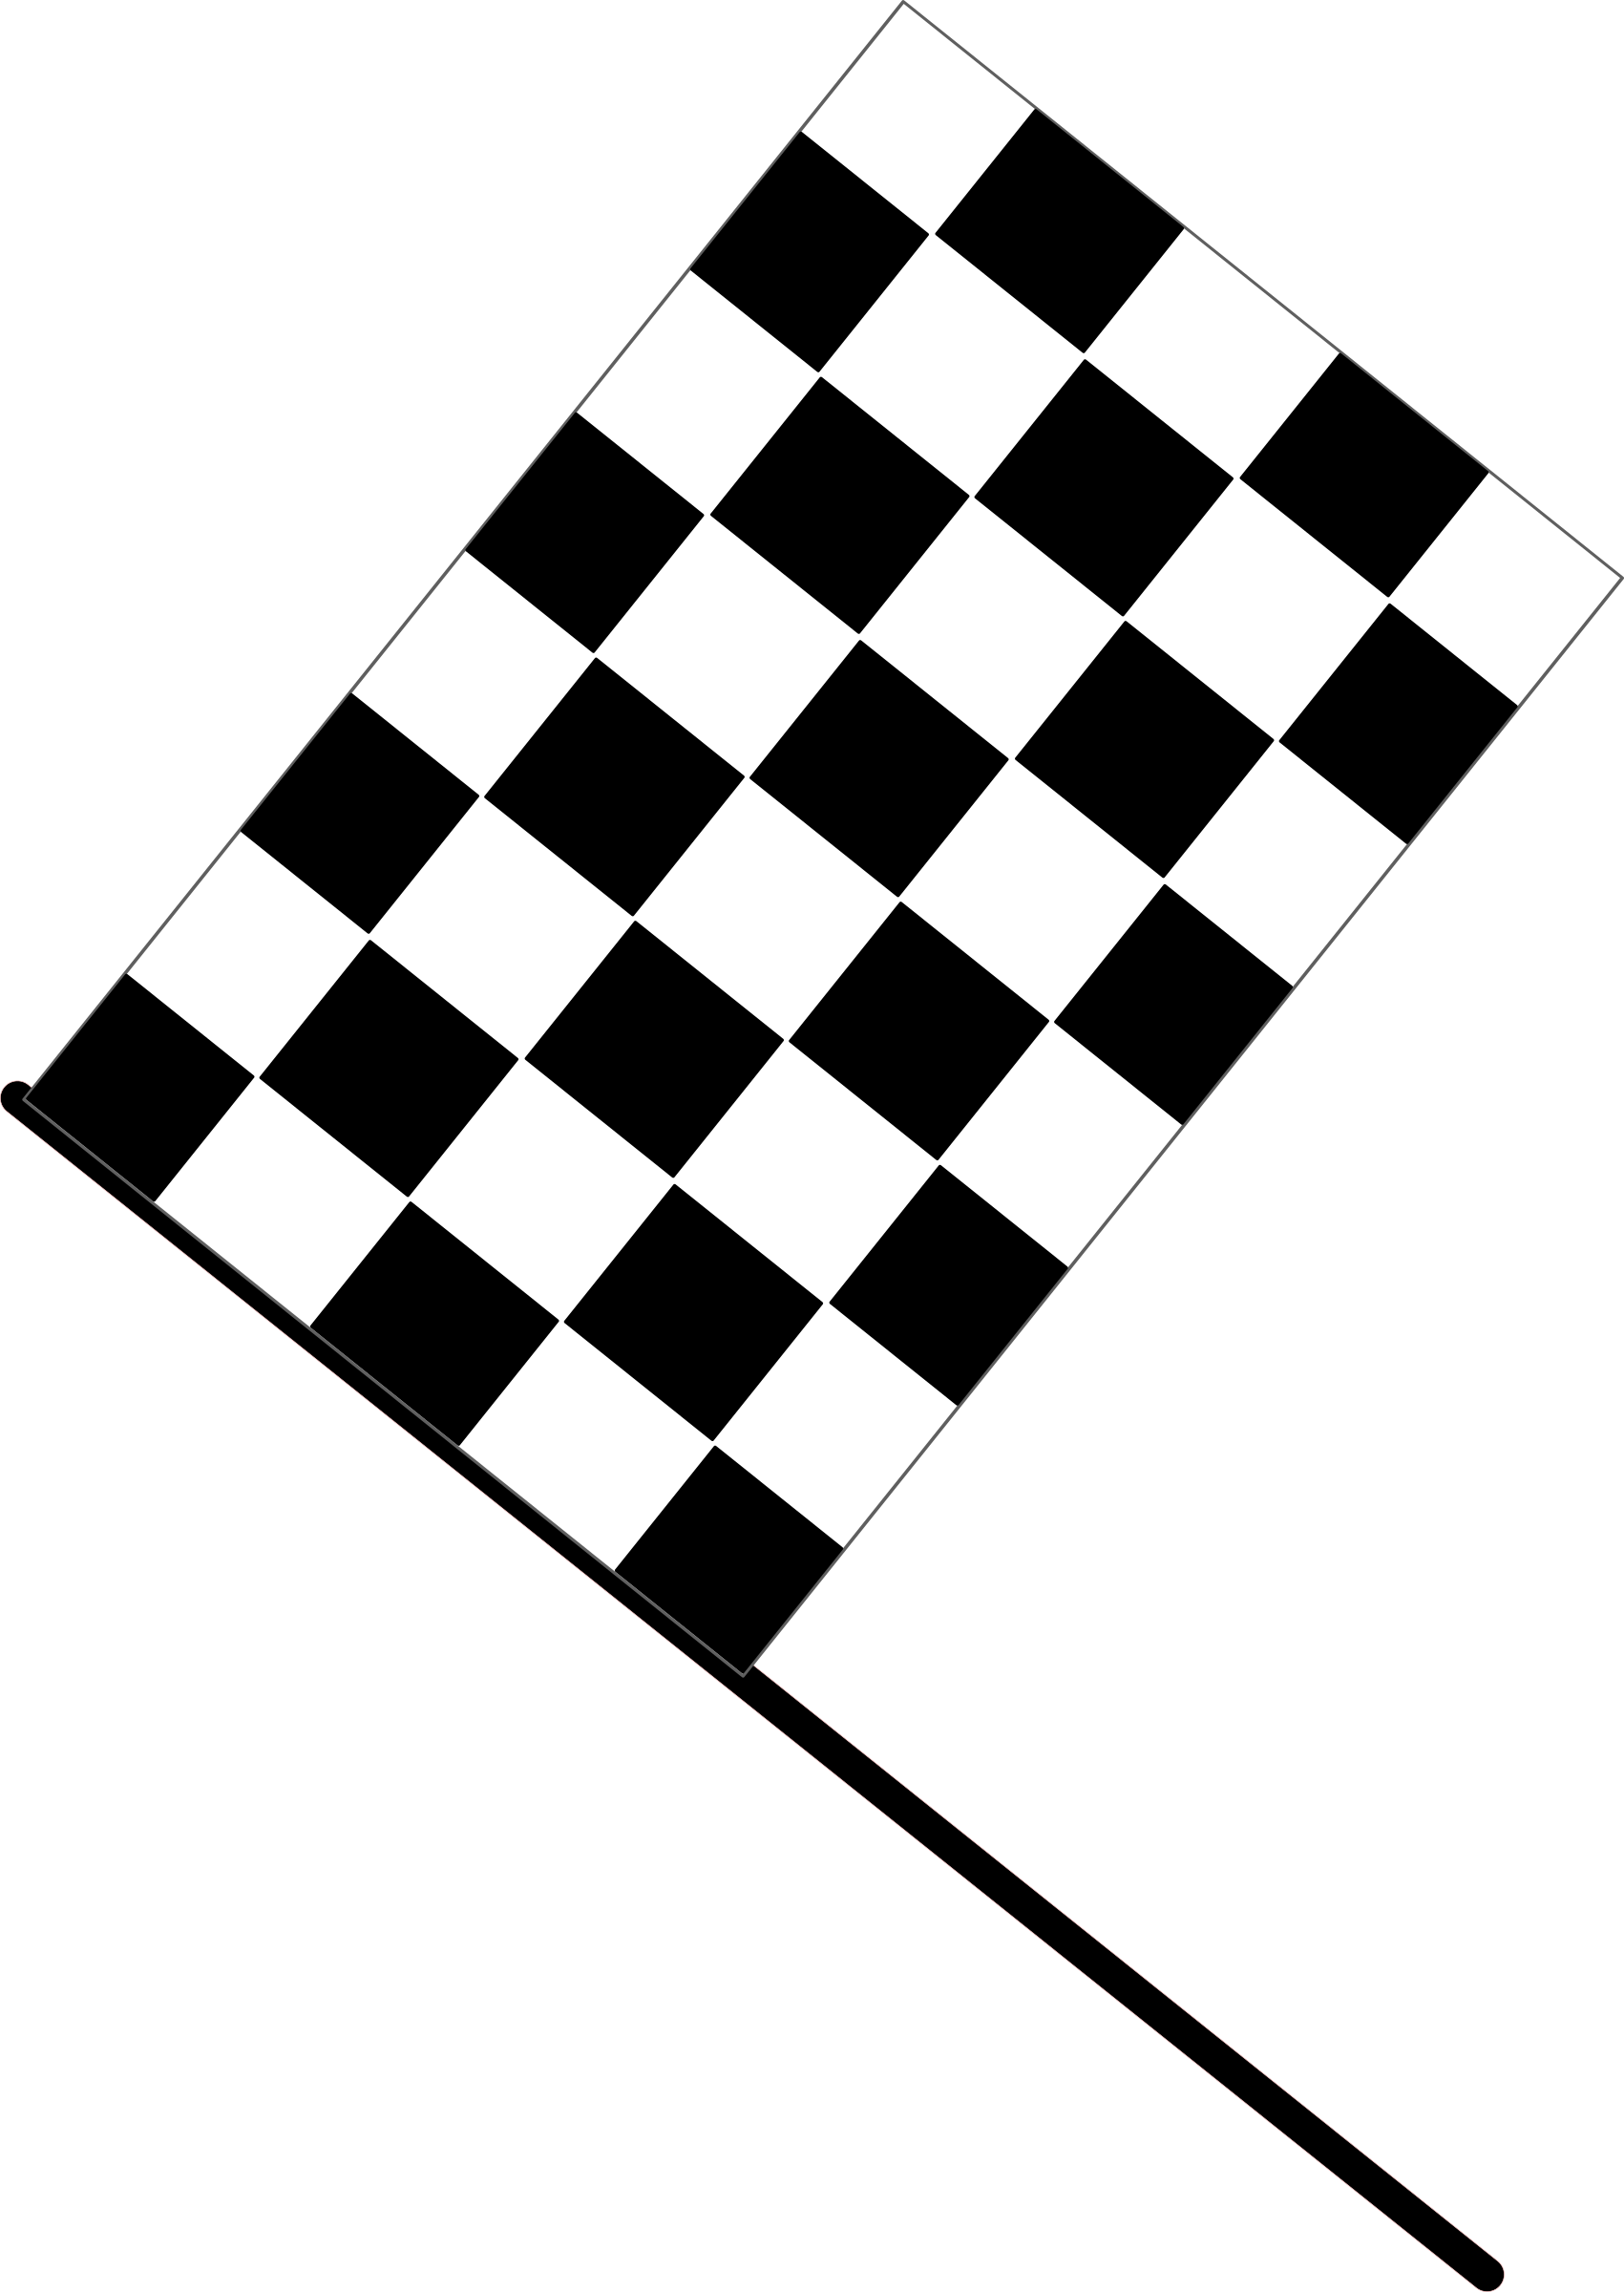 Checkered flag by J_Alves